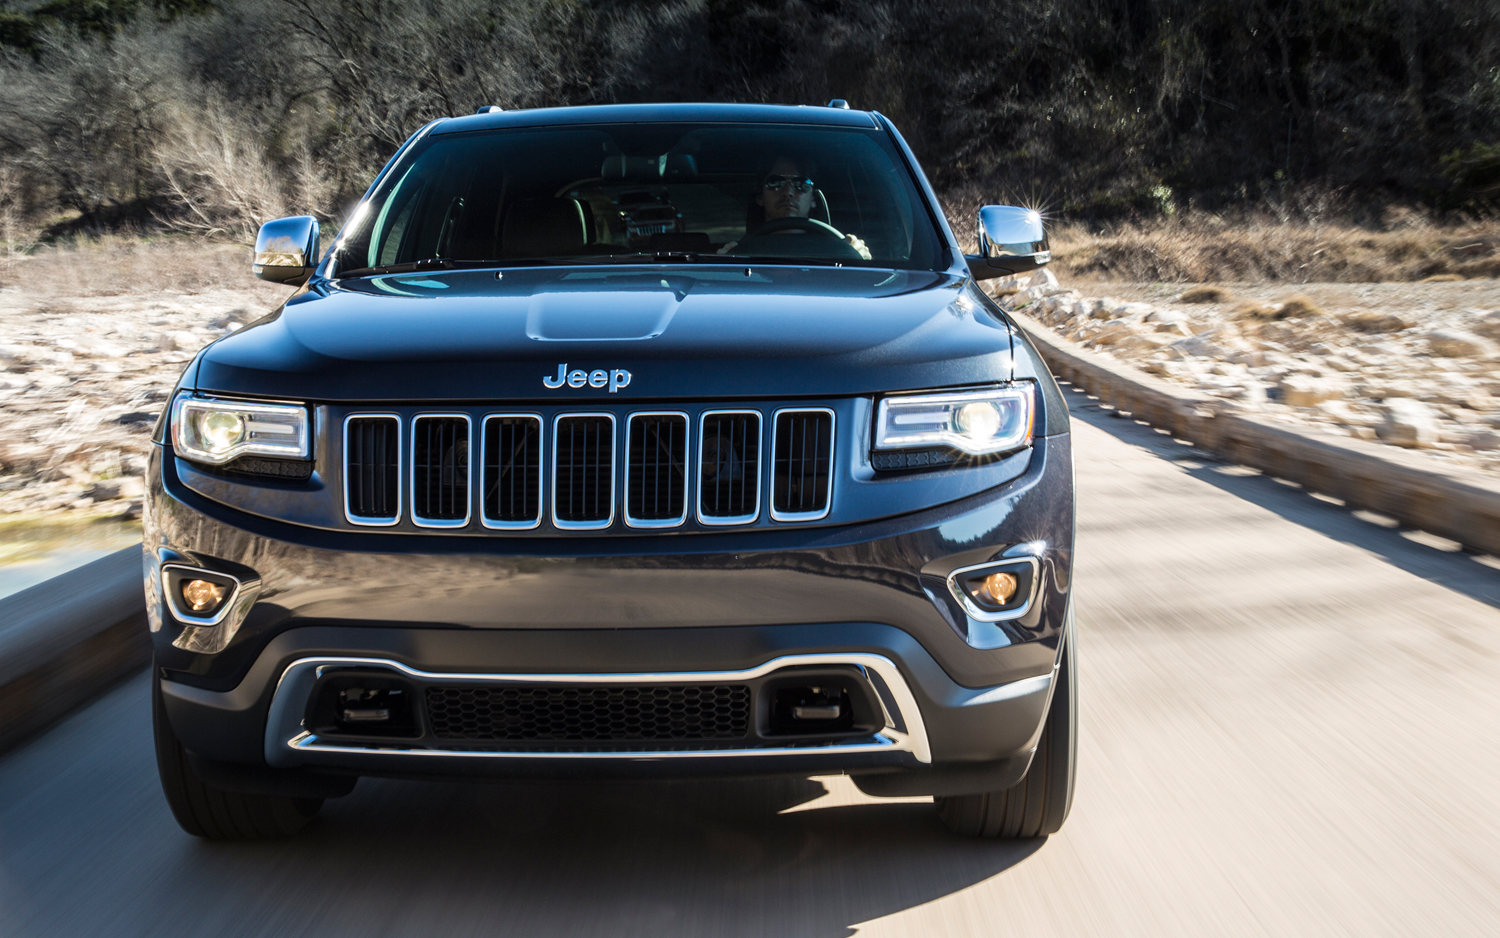 2014 Jeep Grand Cherokee EcoDiesel Wallpaper Free For Computer Wallpaper